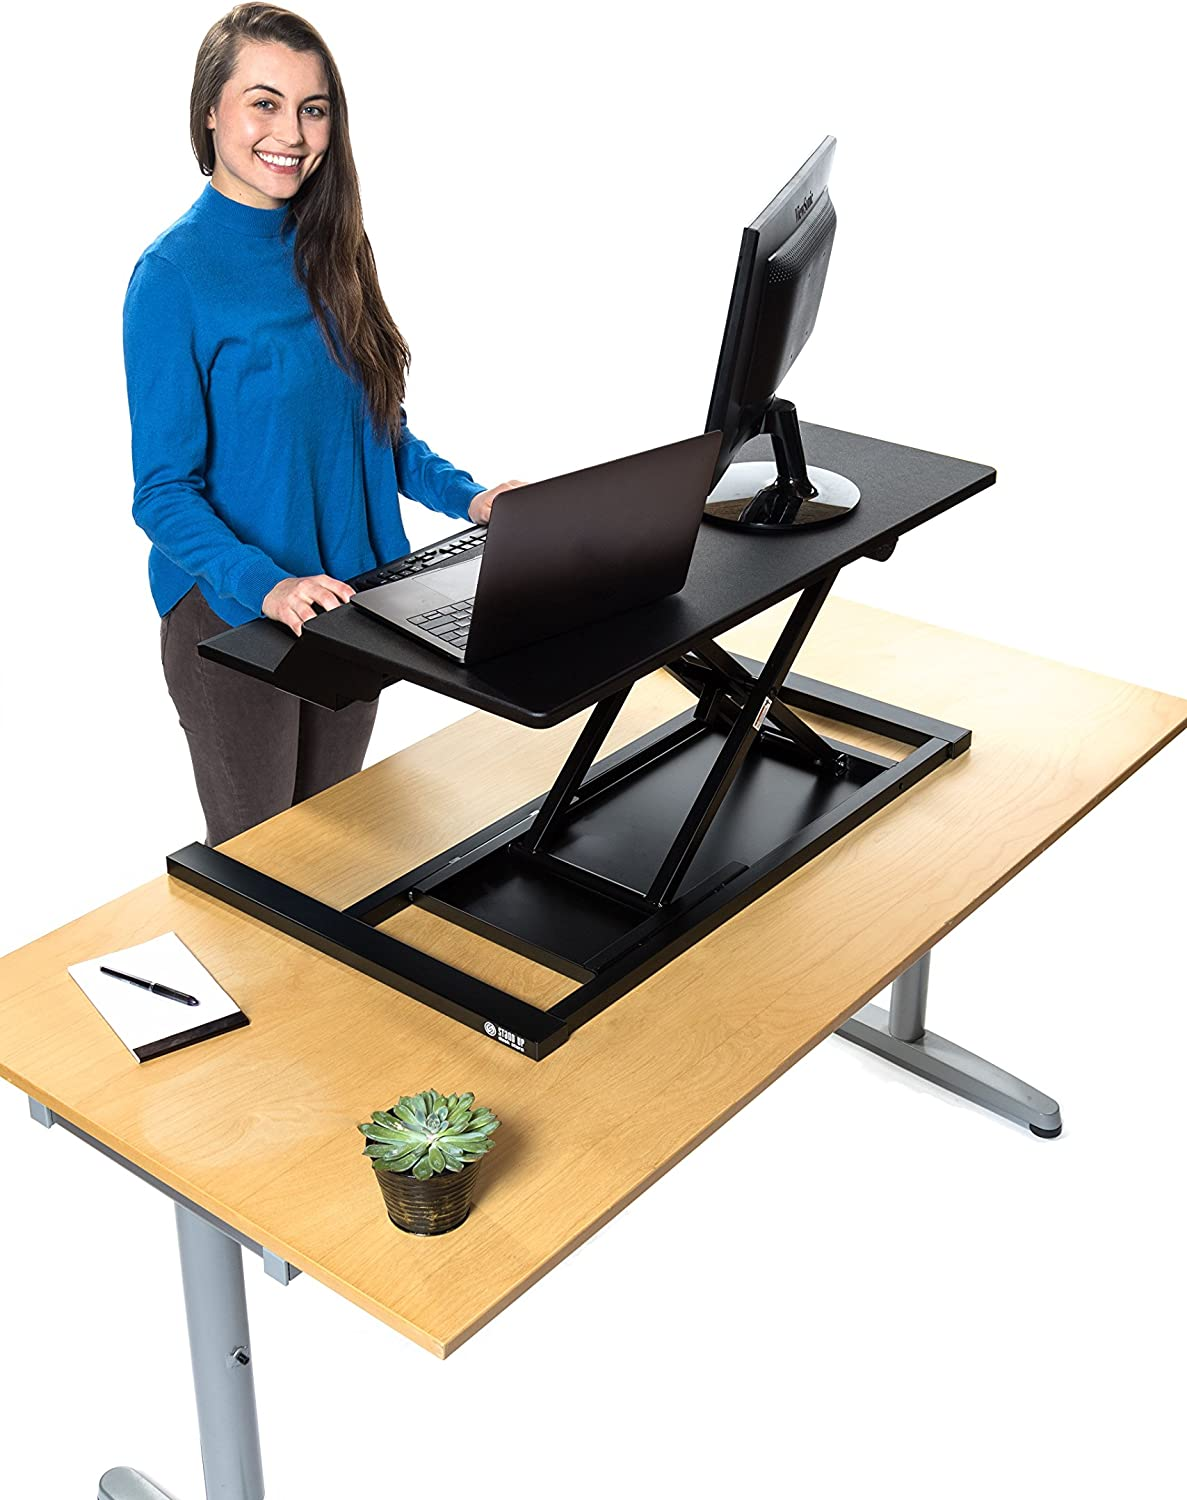 Stand Up Desk Store AirRise Electric Power Pro Two-Tier Standing Desk Congreener Sit Stand Desk - Turn Any Desk Into a Stand Up Desk Adjustable Desk (Electric Adjustment   36  Wide   Black)